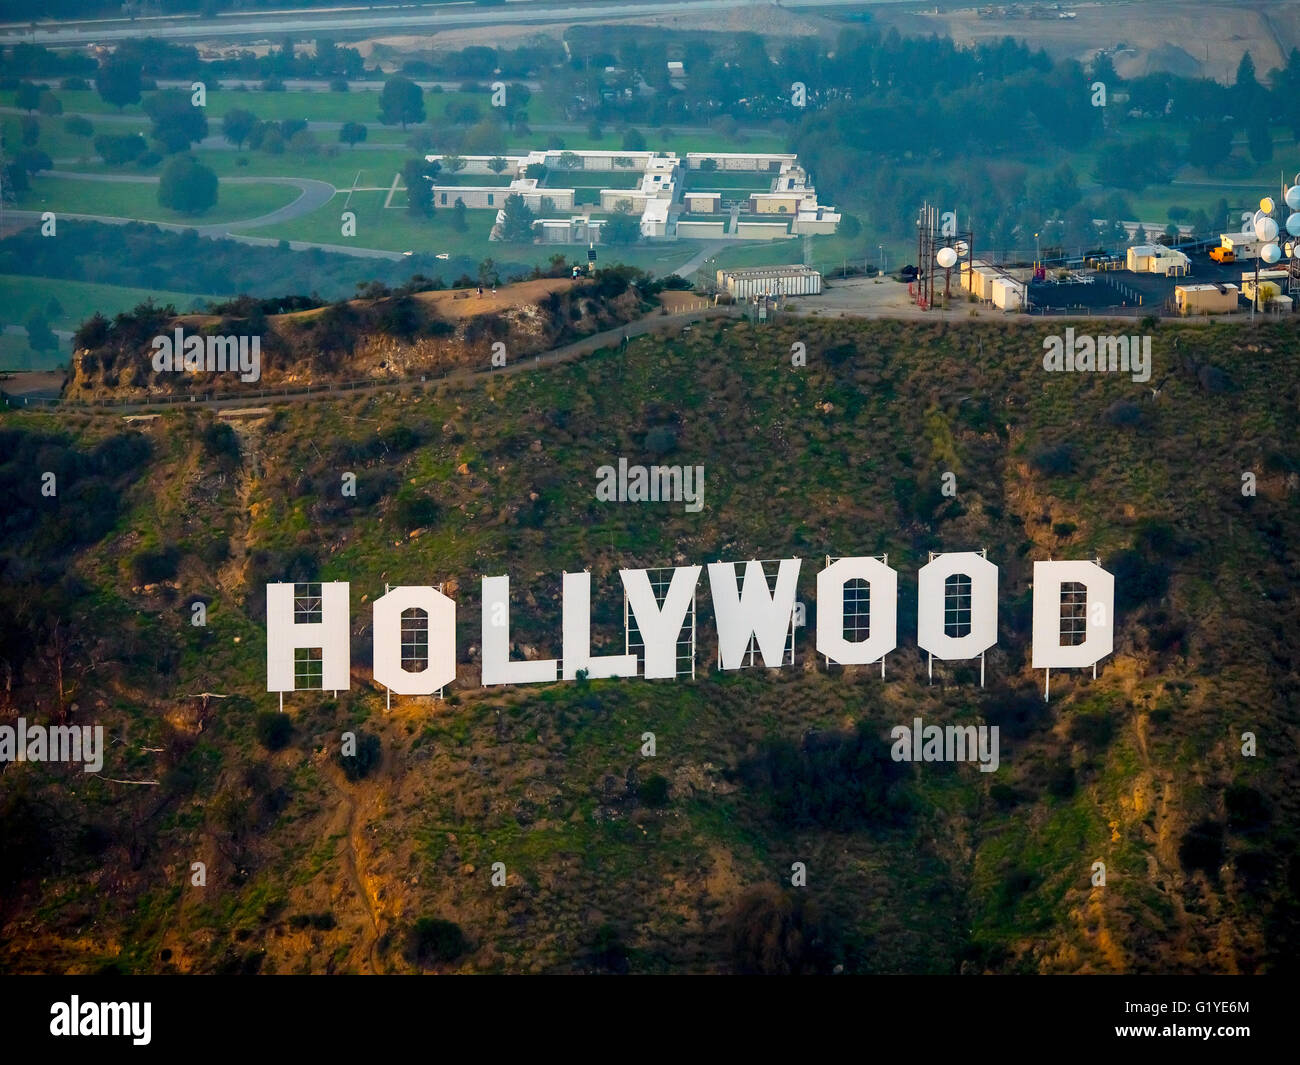 Hollywood sign on Mount Lee Drive, Hollywood Hills, Los Angeles, Los Angeles County, California, USA - Stock Image